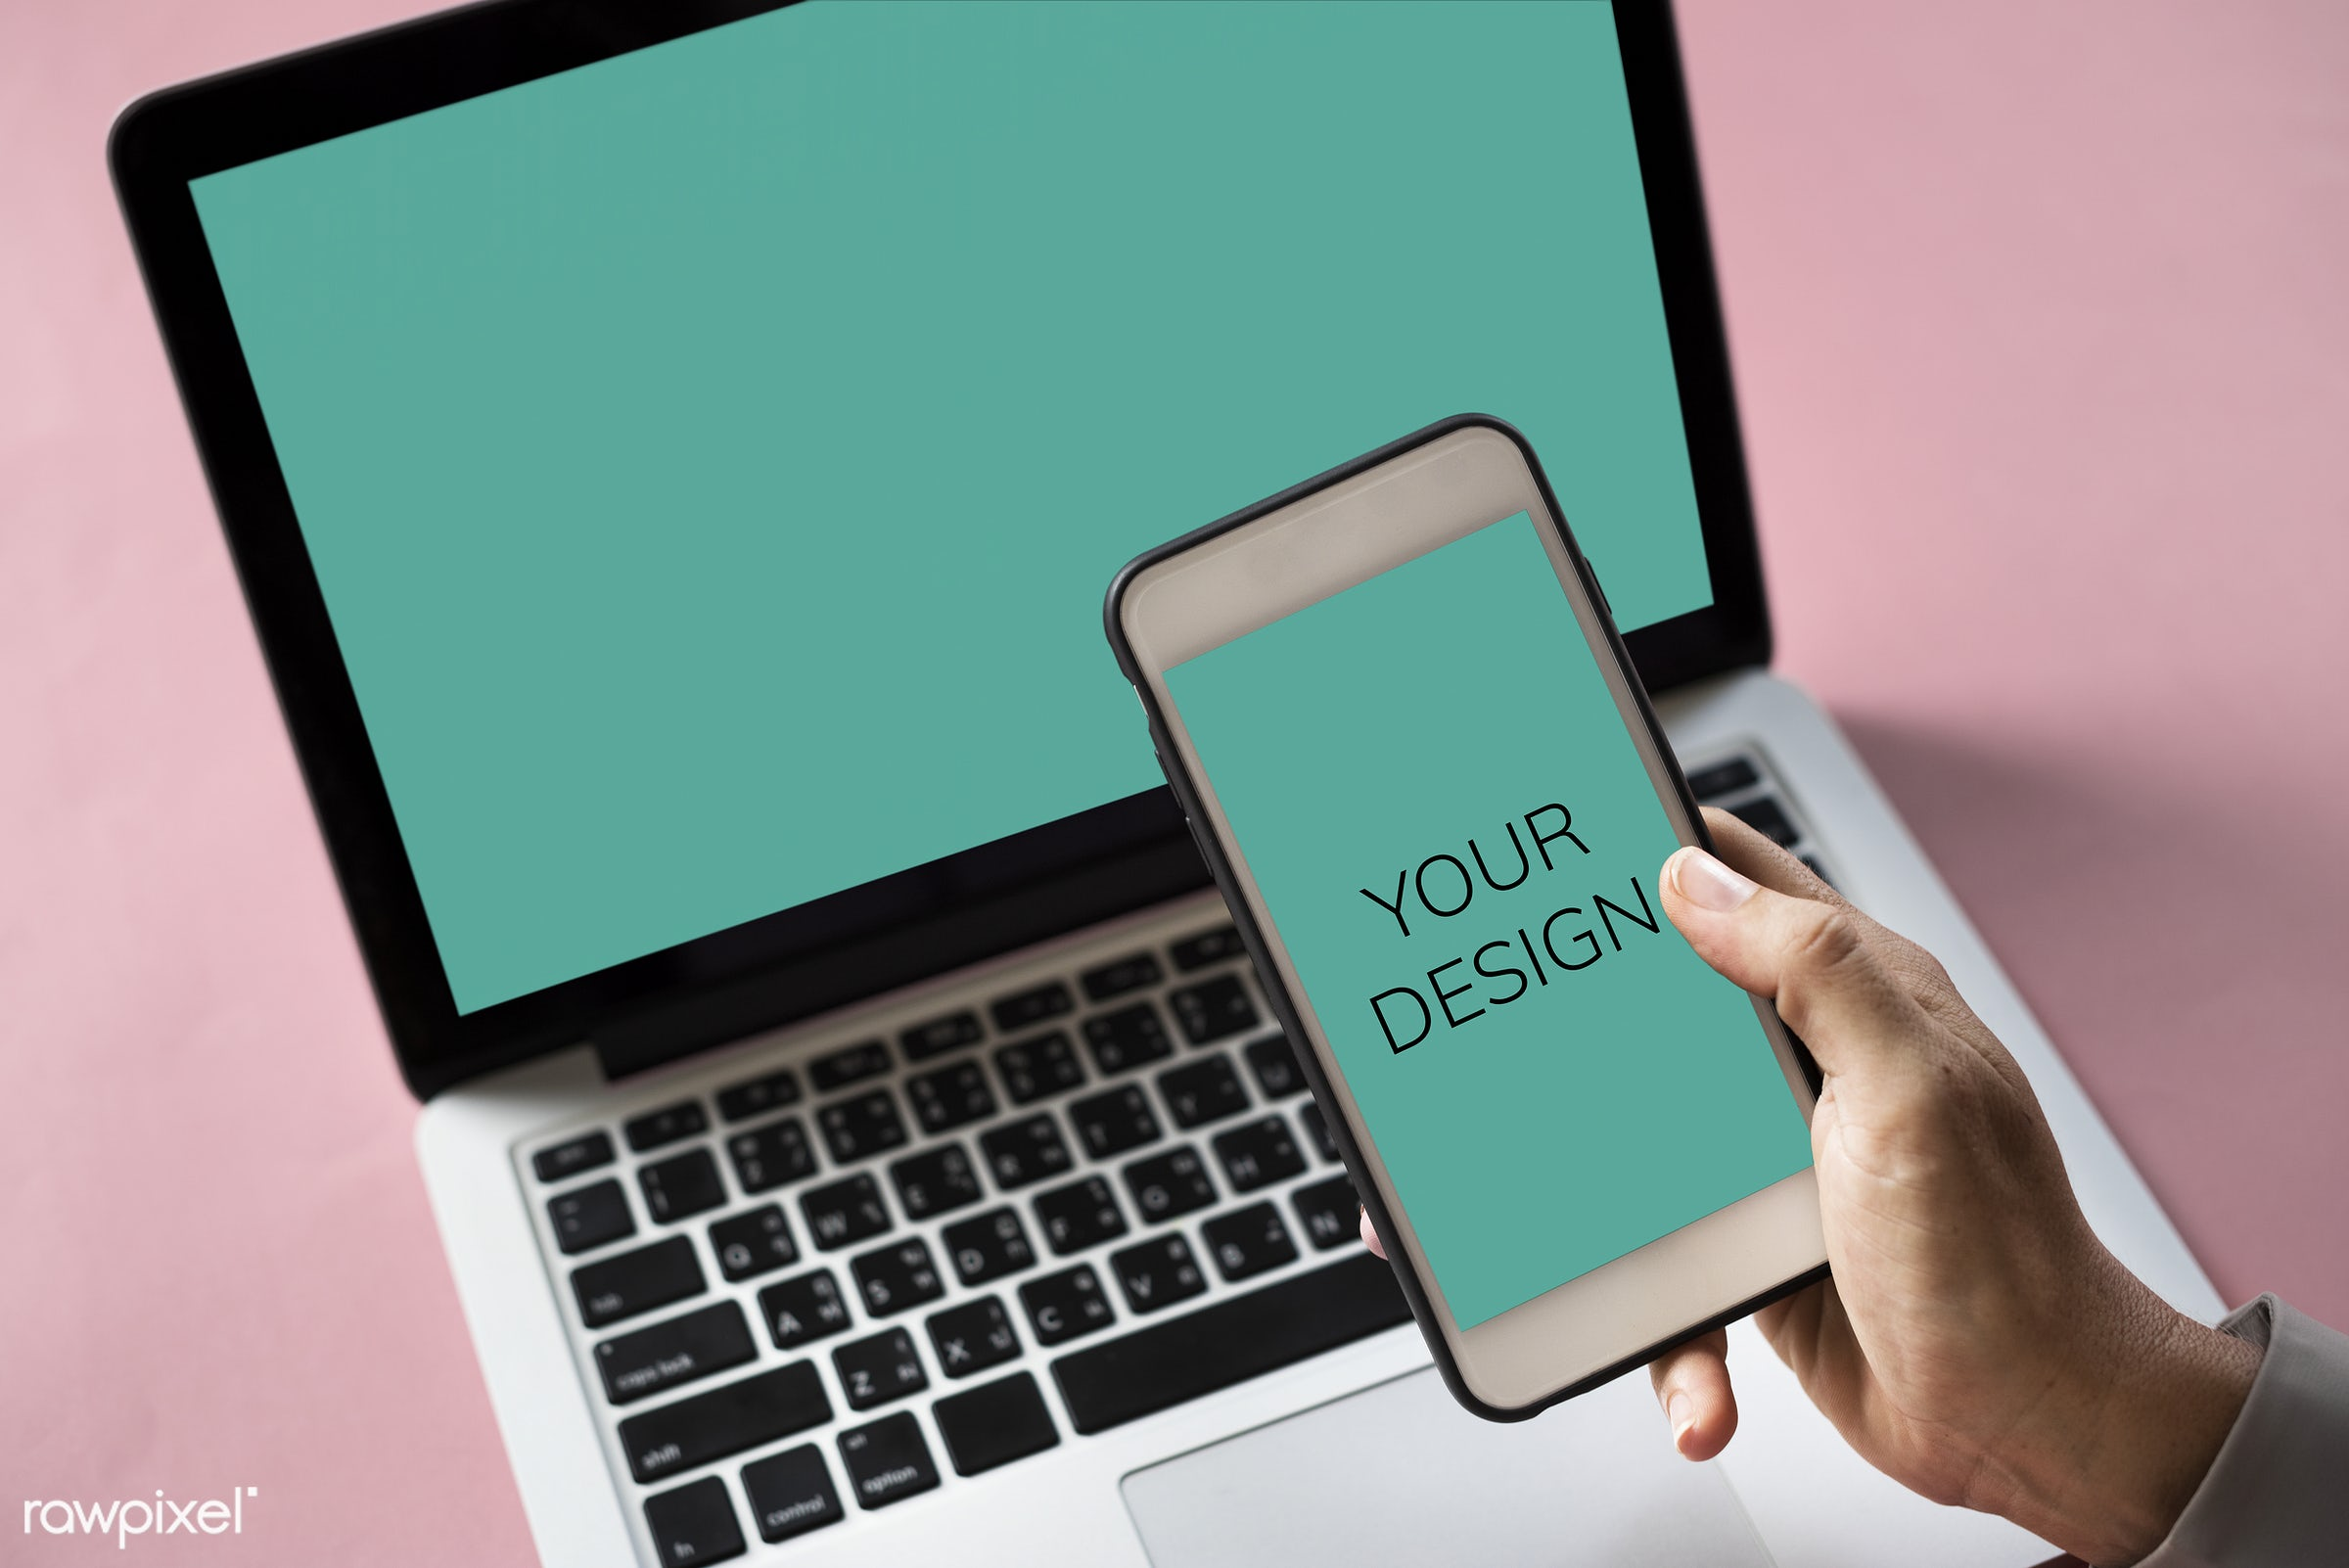 Your design on a smartphone screen - your, design, hand, smartphone, concept, difference, different, forward, individual,...